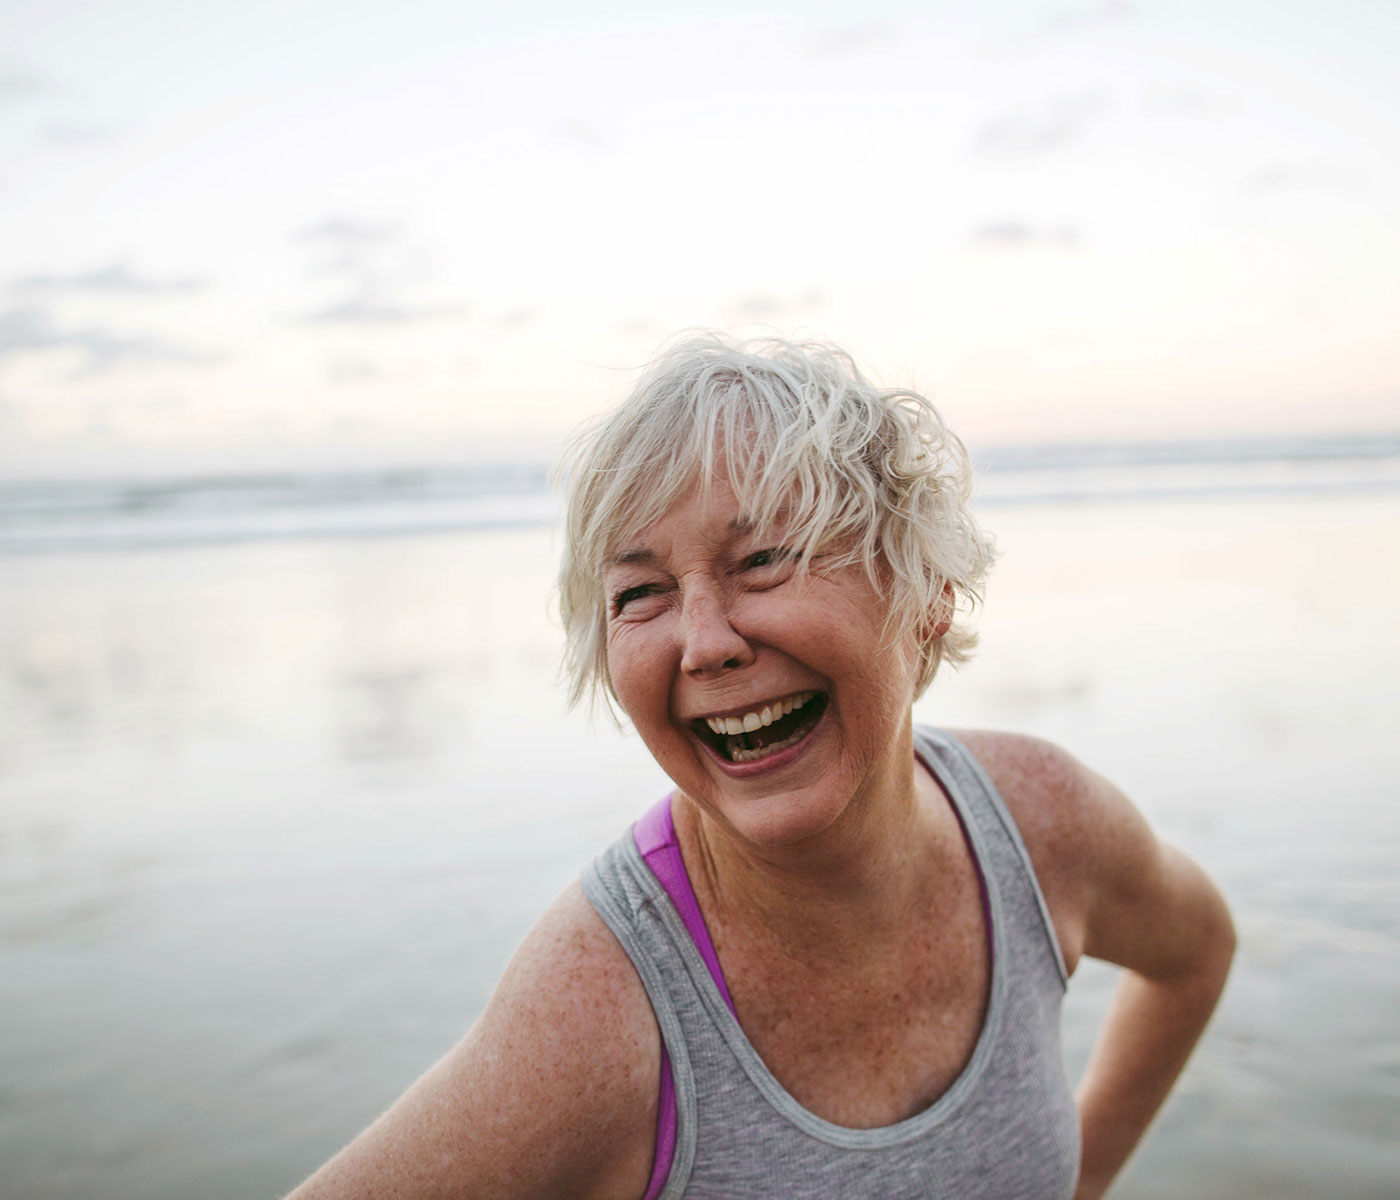 Smiling Older Woman on the Beach